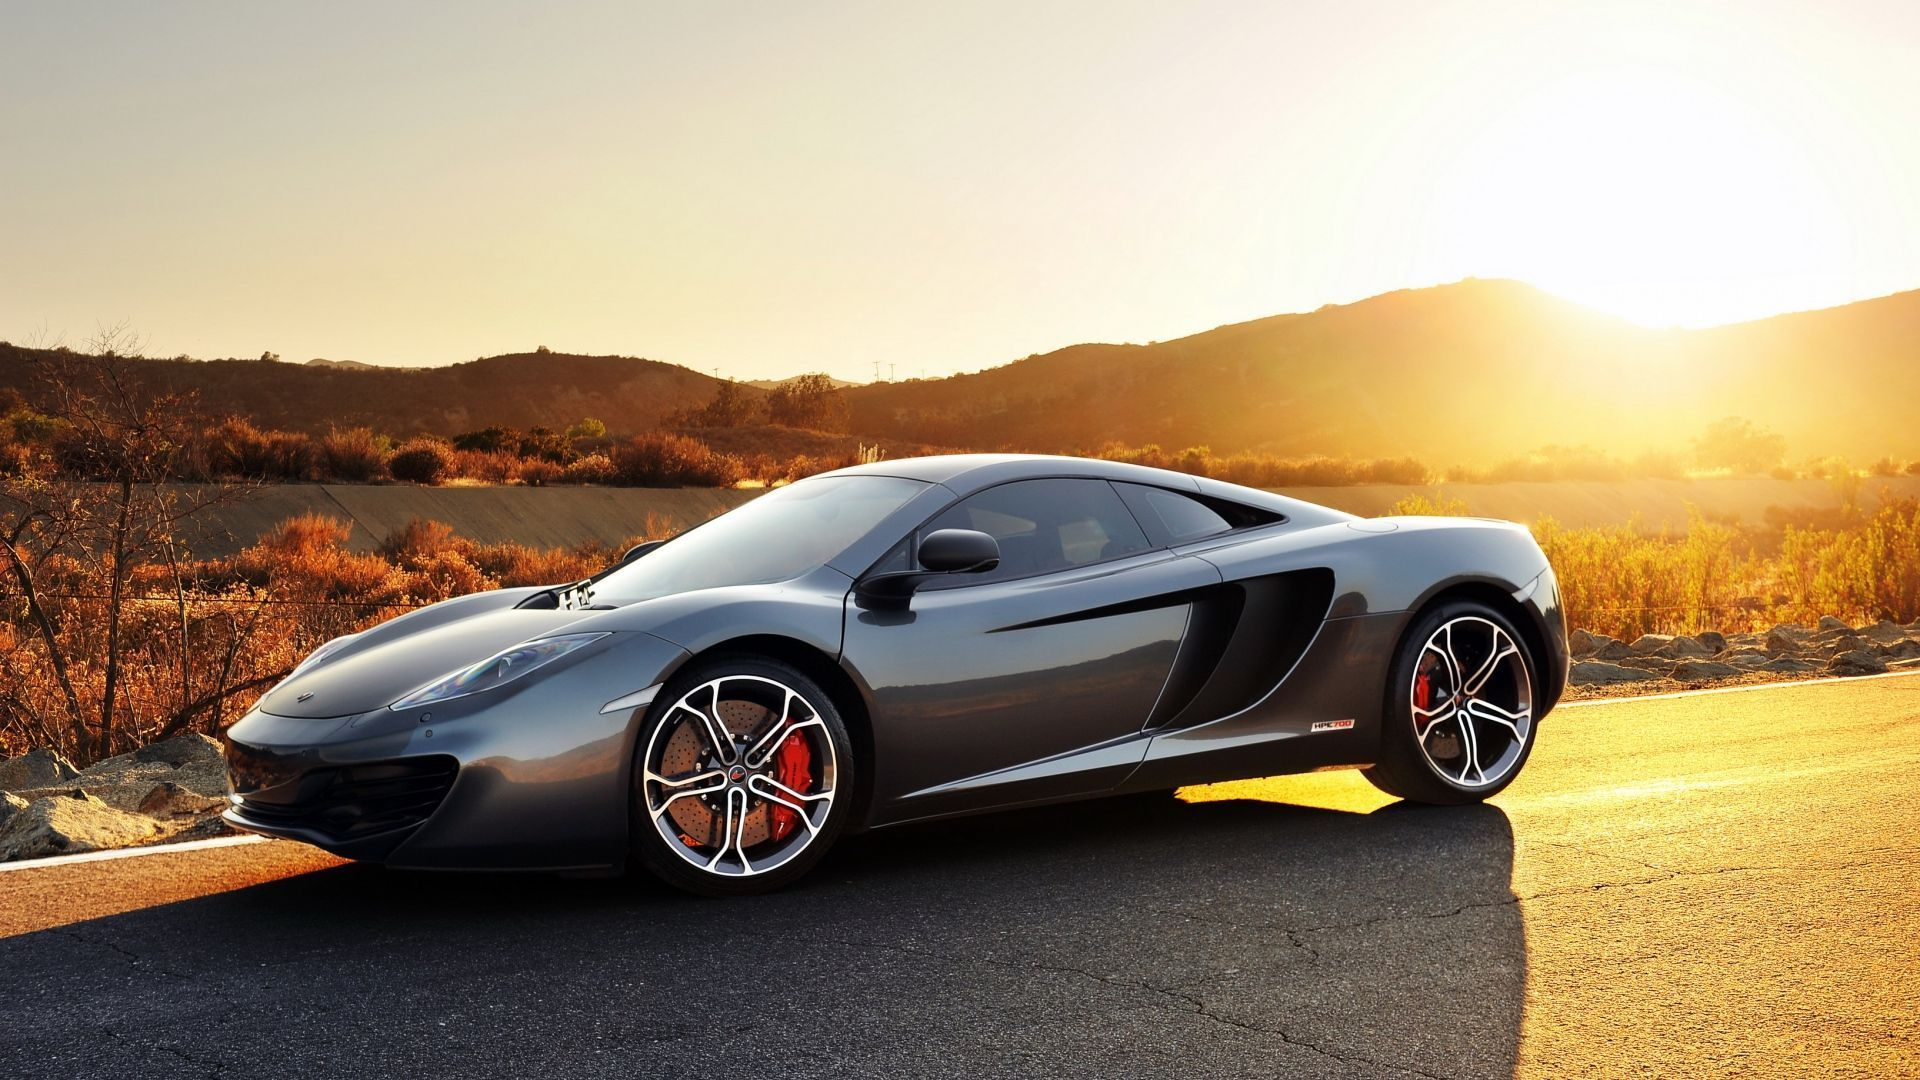 Mclaren mp4 12c in gray side view sunset 1920x1080 download mclaren mp4 12c in gray side view sunset 1920x1080 fandeluxe Images